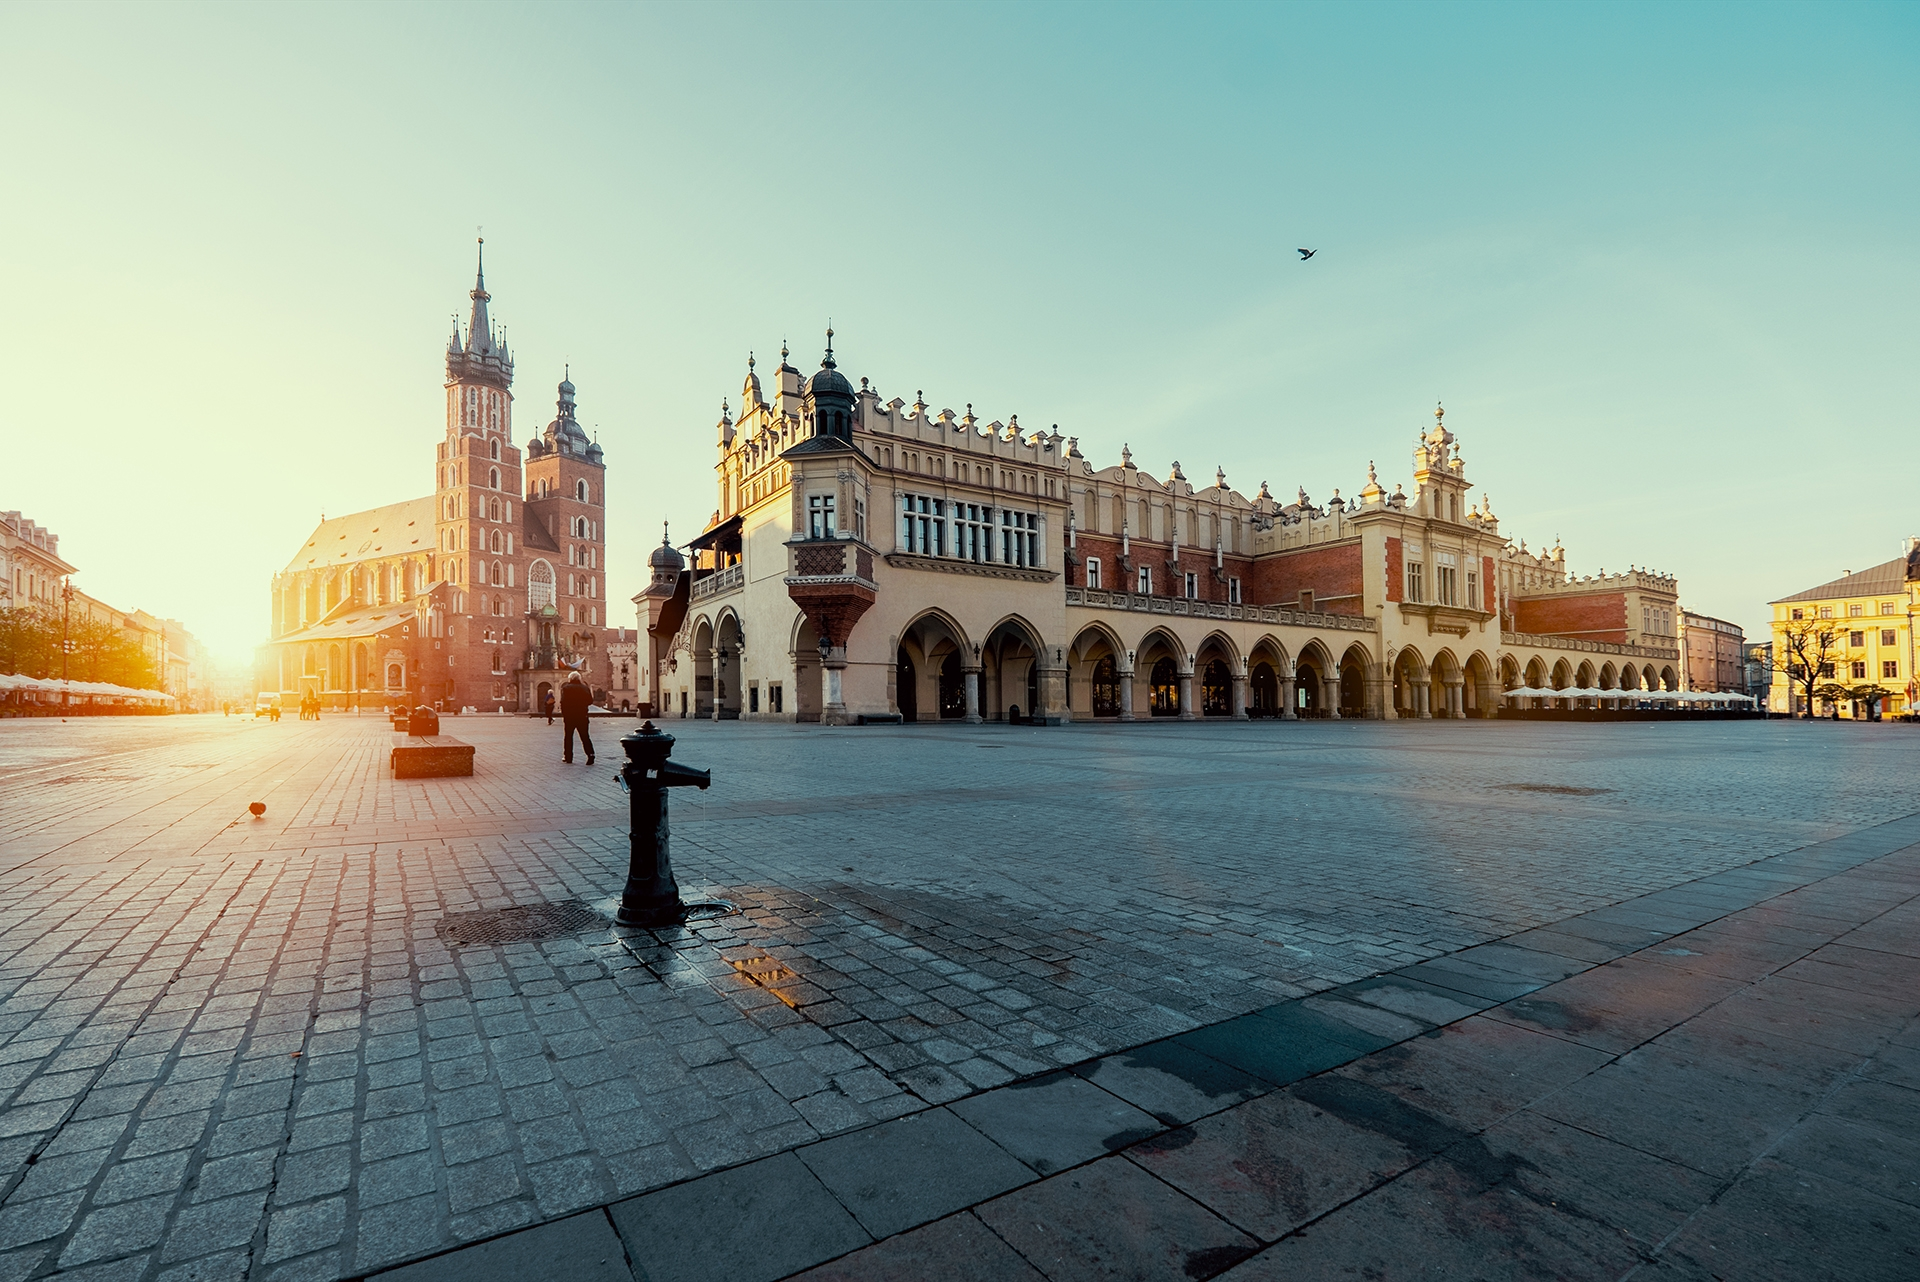 Market-square-in-Krakow-at-sunrise.-Mariacki-Cathedral-and-The-Cloth-Hall.-Poland